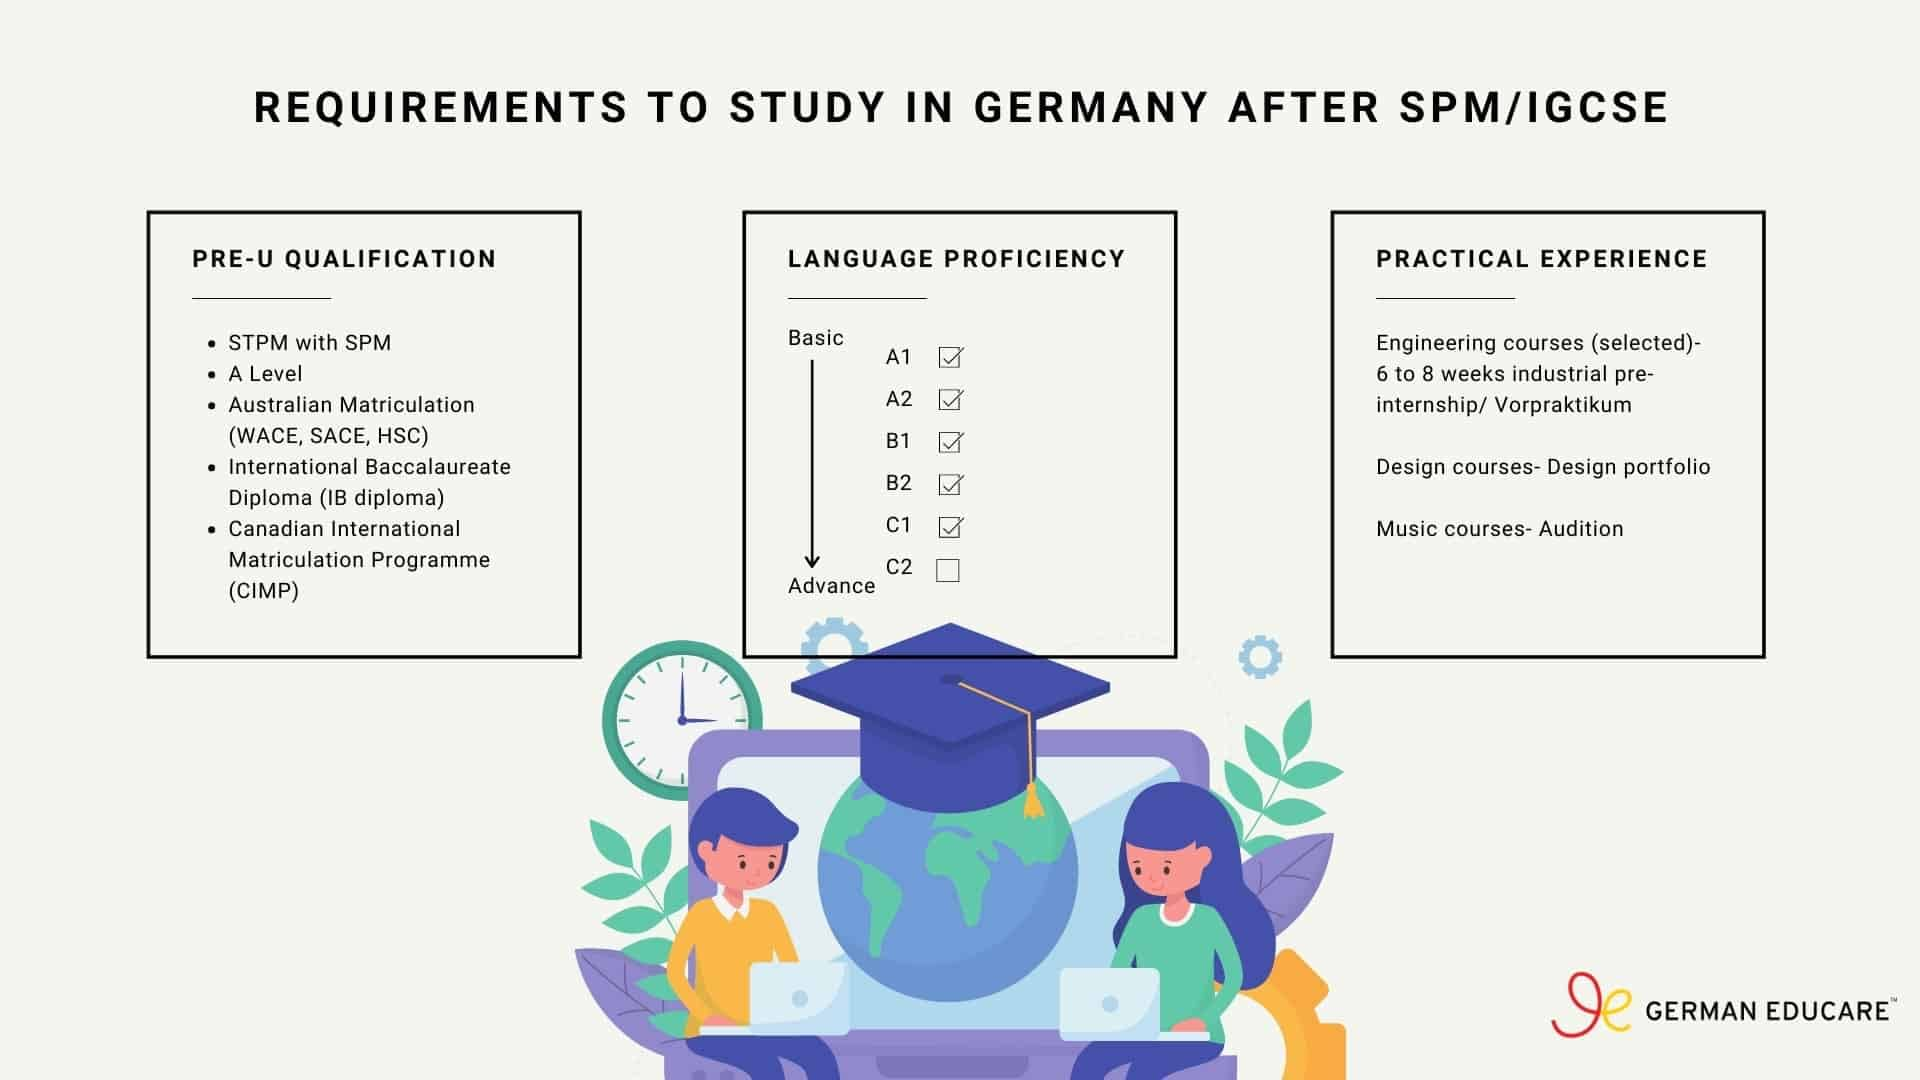 Requirements to study in Germany after SPM or IGCSE